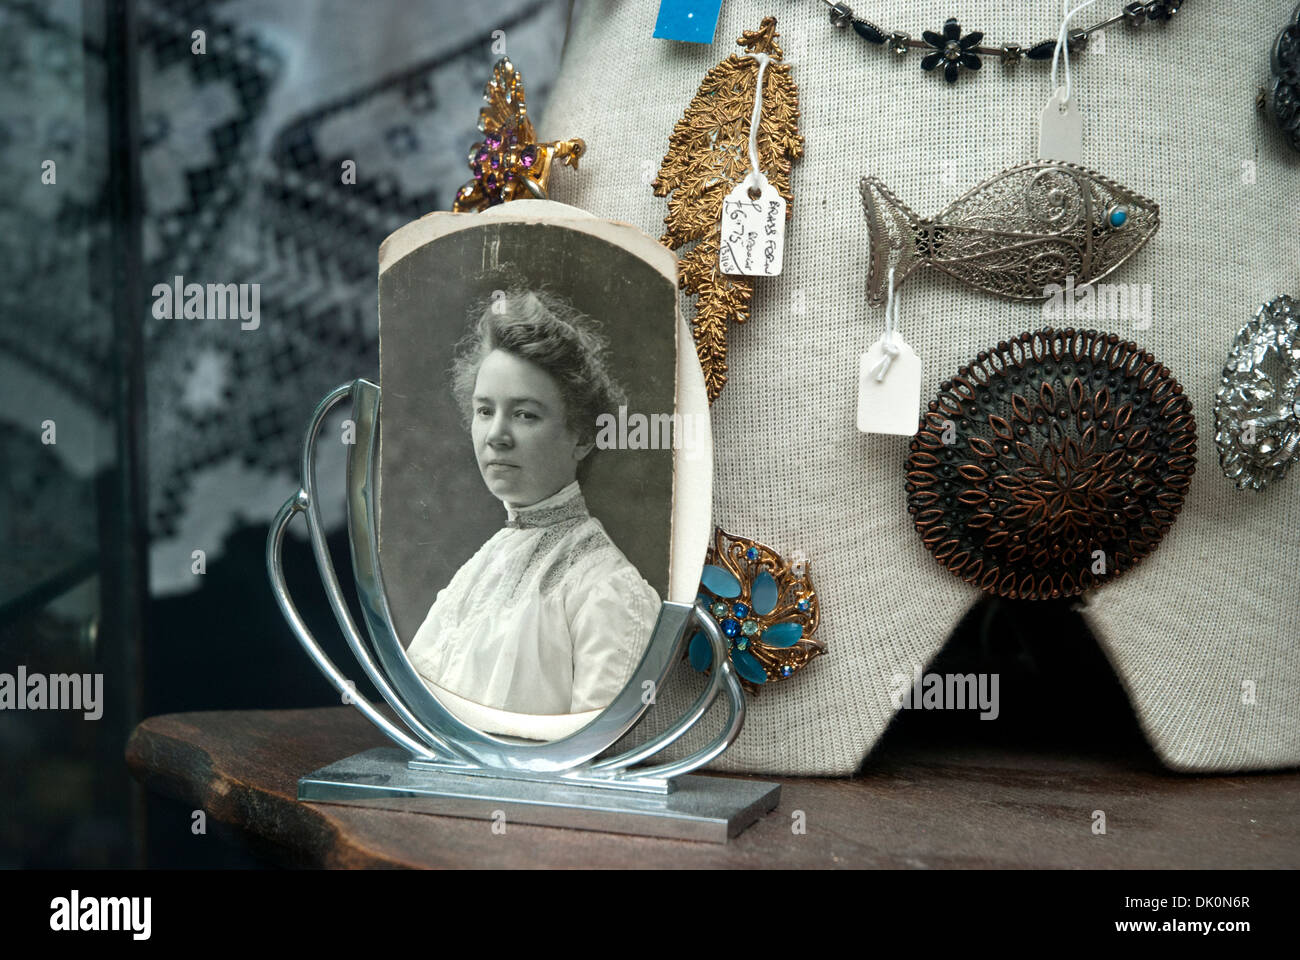 Black and white photograph of a Victorian woman on display in an antique/junk shop window. - Stock Image